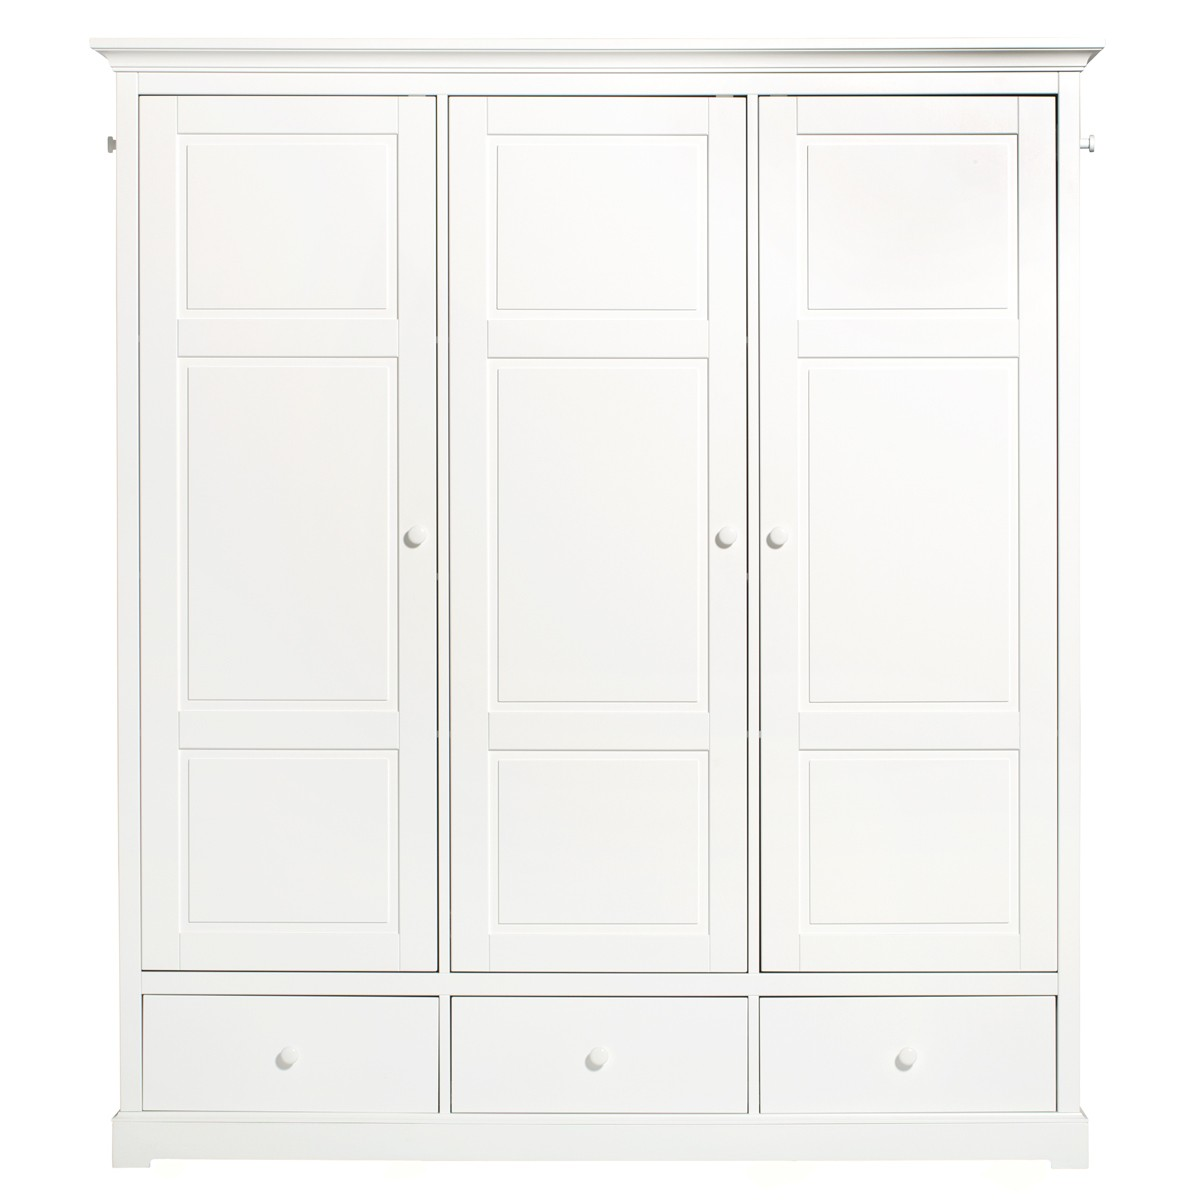 Wardrobe 3 Doors Seaside (H: 195cm) White Oliver Furniture